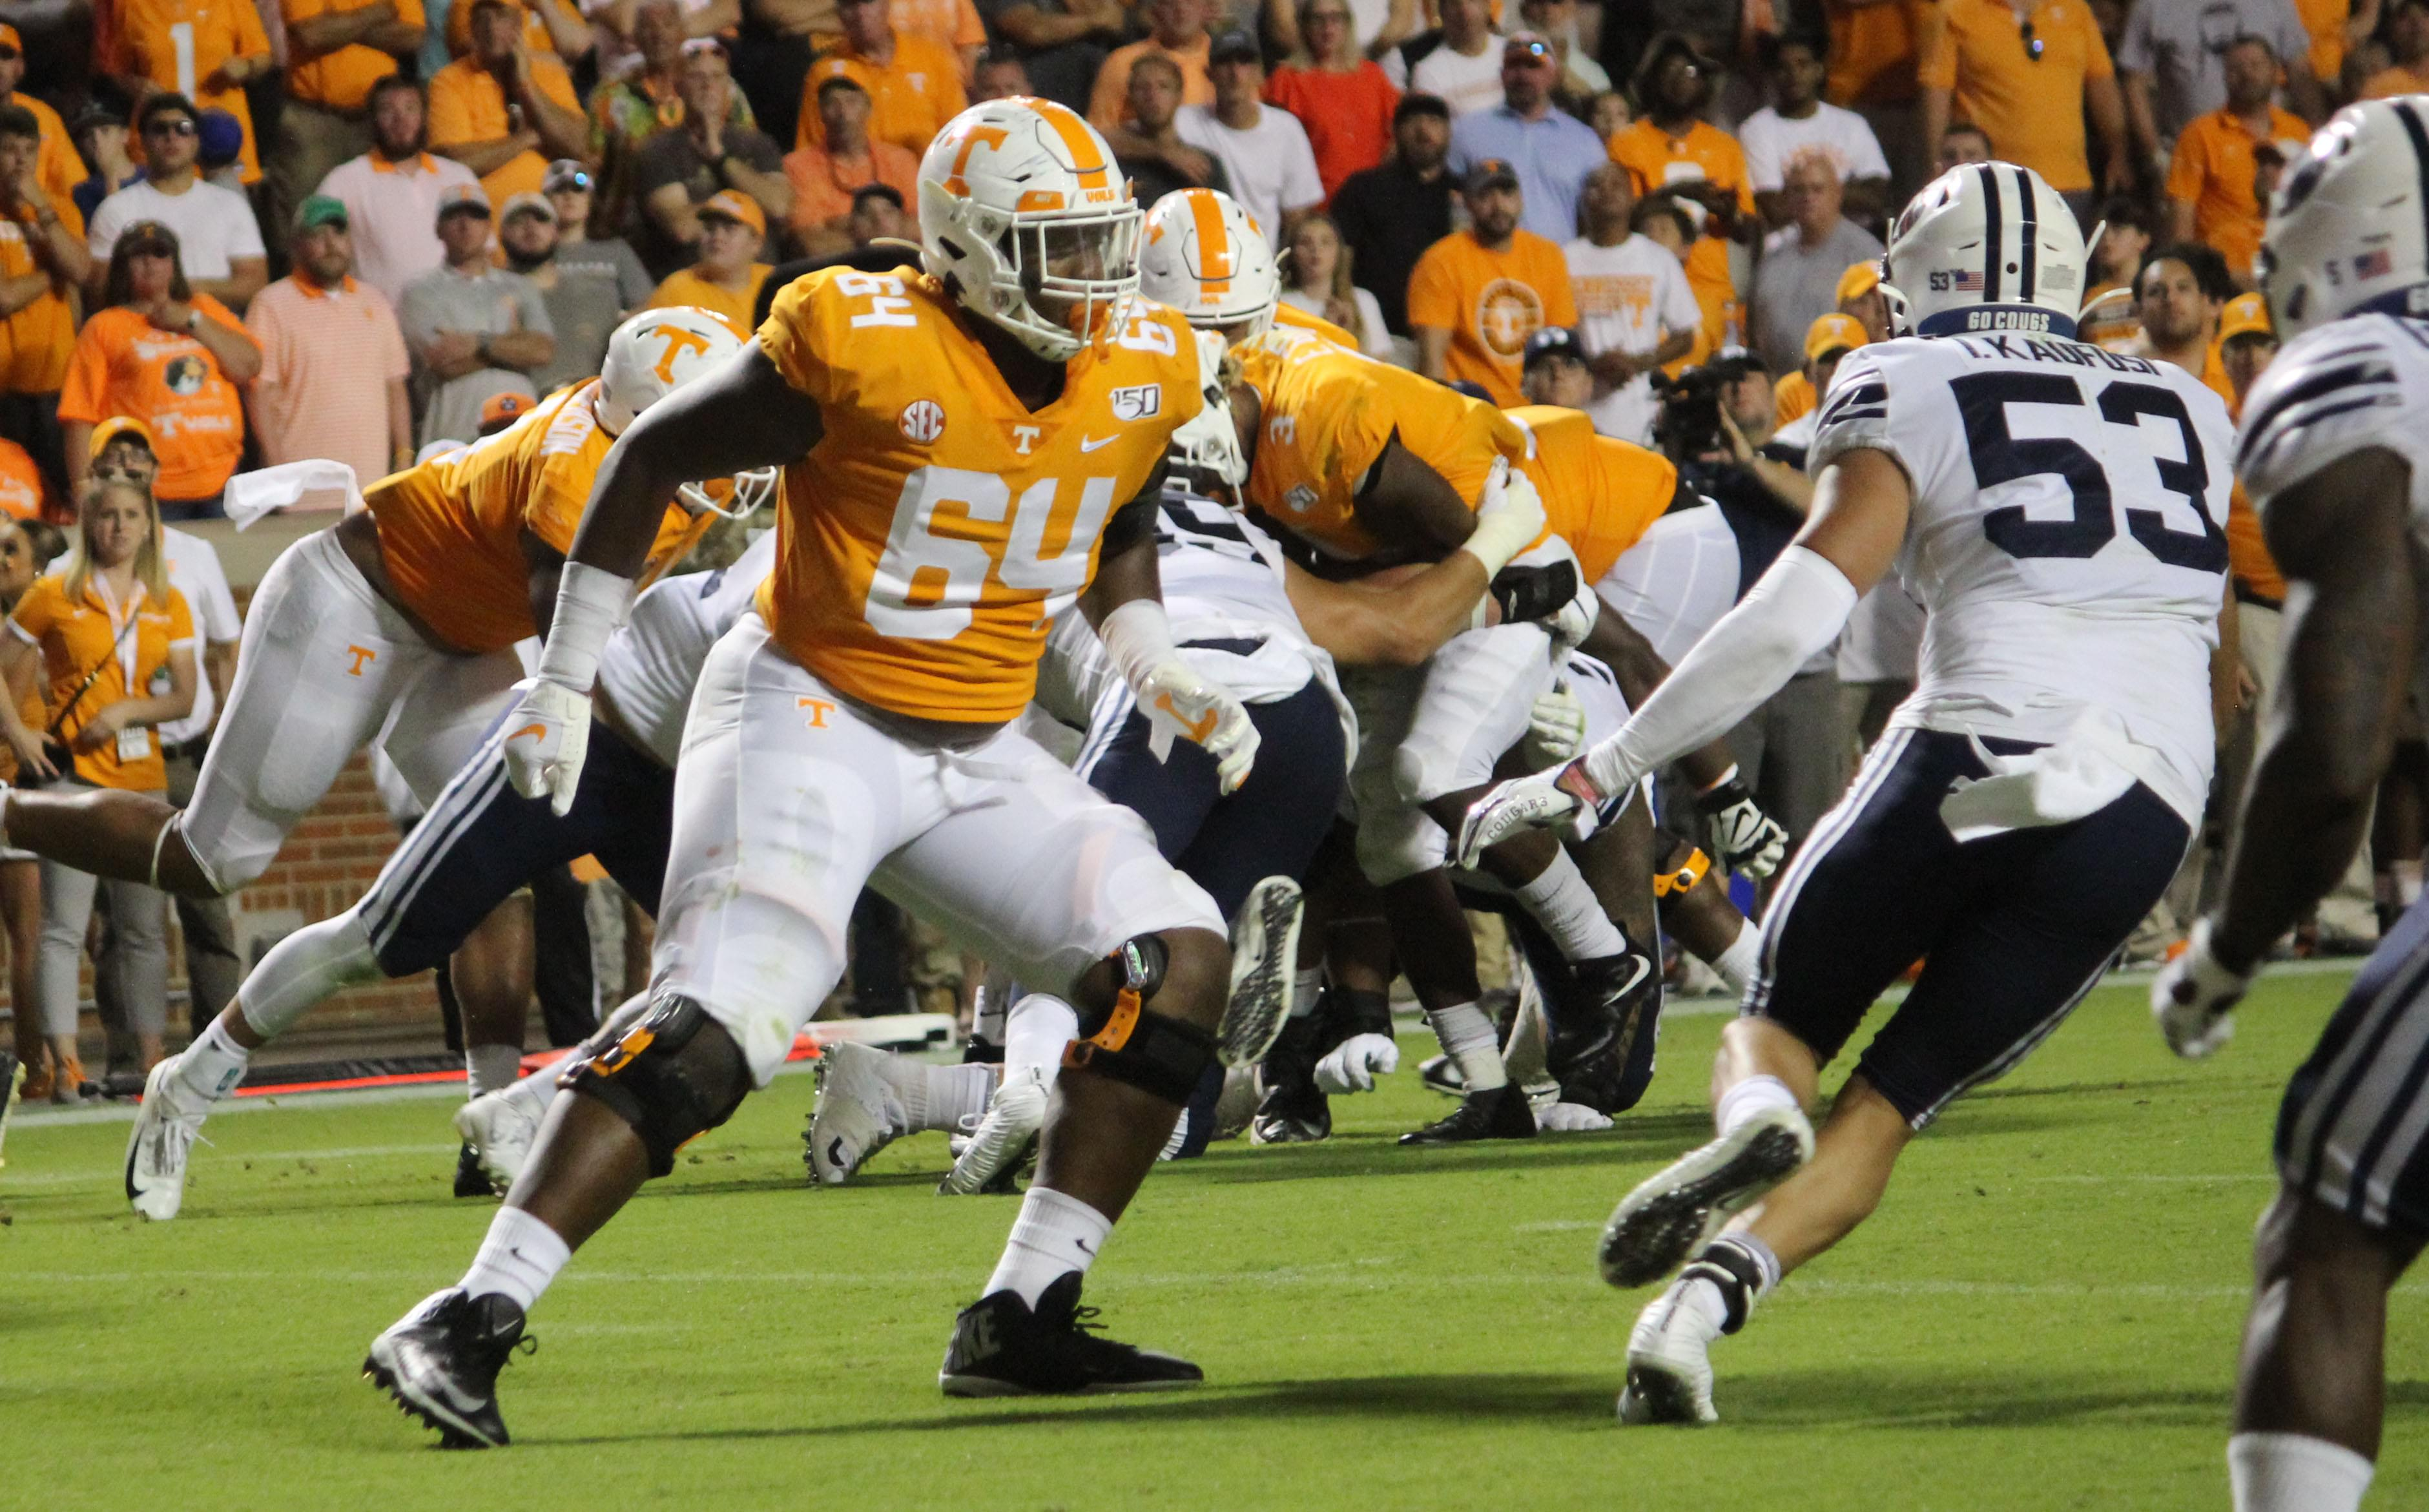 Cainer's Corner: Why most Vols transferring comes as no shock